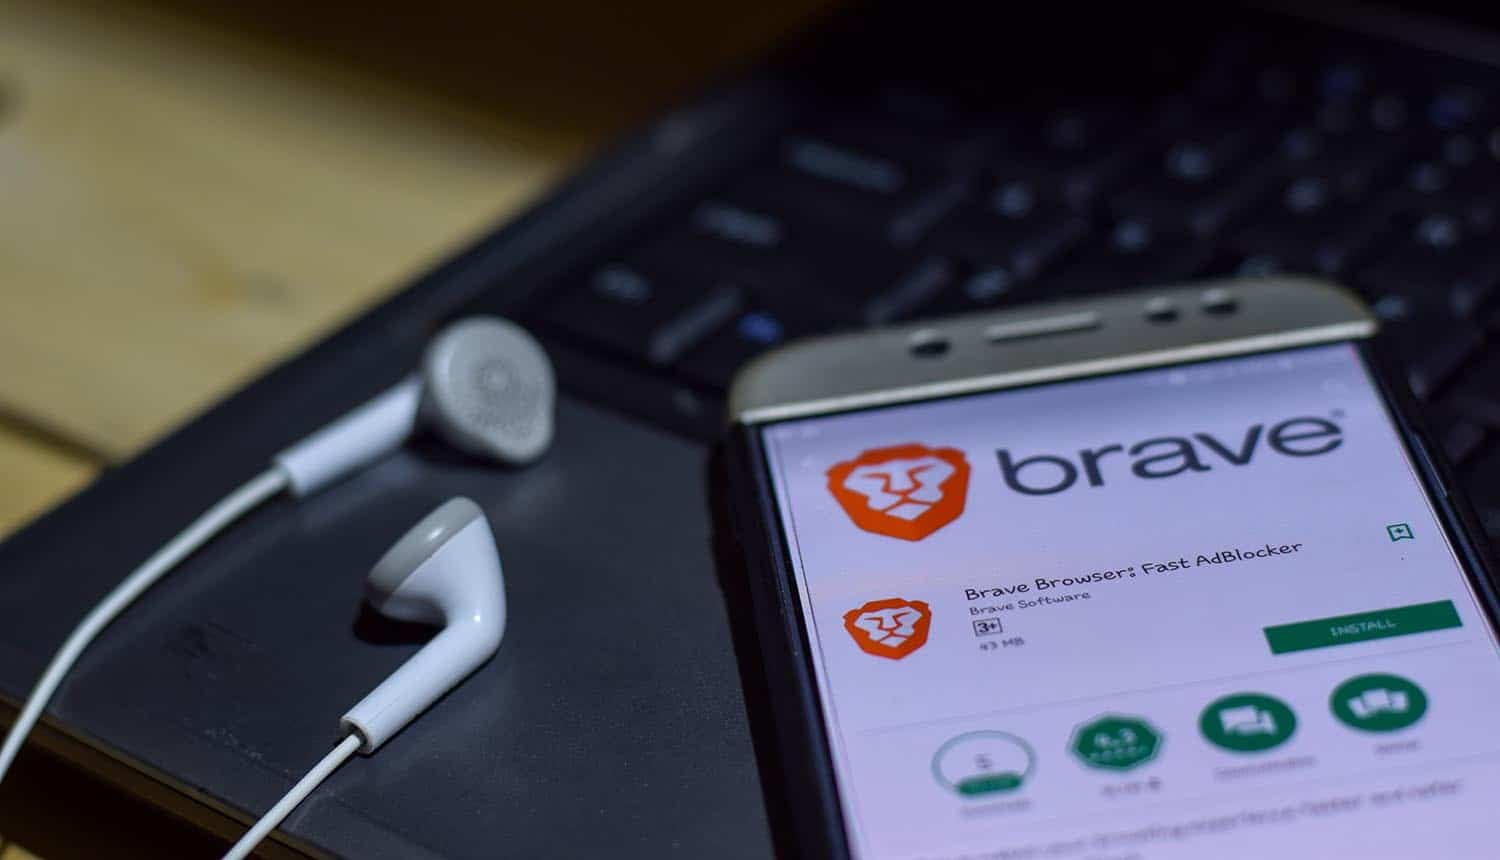 Brave browser on smartphone screen showing study on private browsers and privacy-invading telemetry